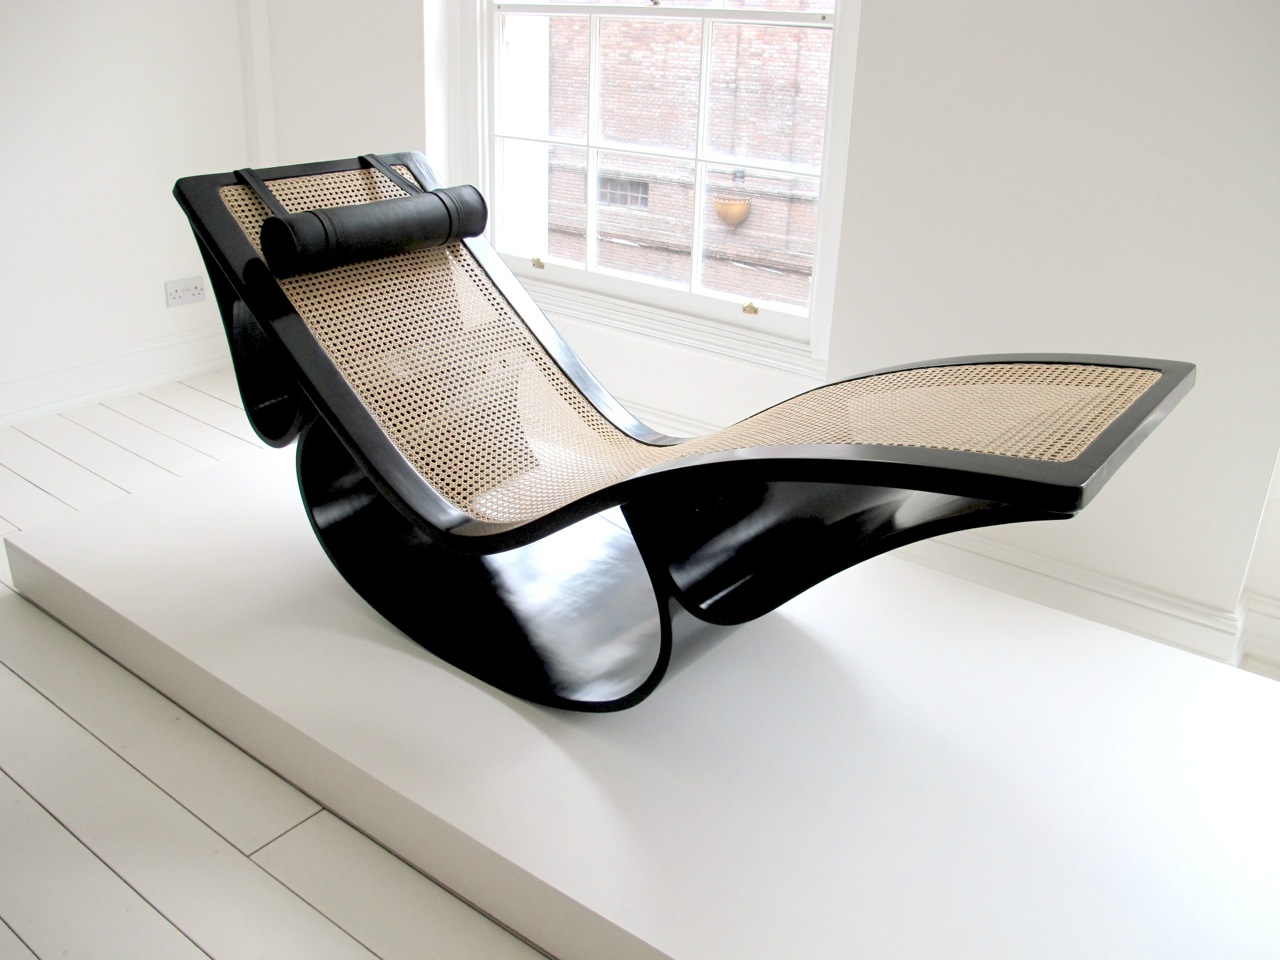 espasso london new arrival vintage rio chaise longue by. Black Bedroom Furniture Sets. Home Design Ideas